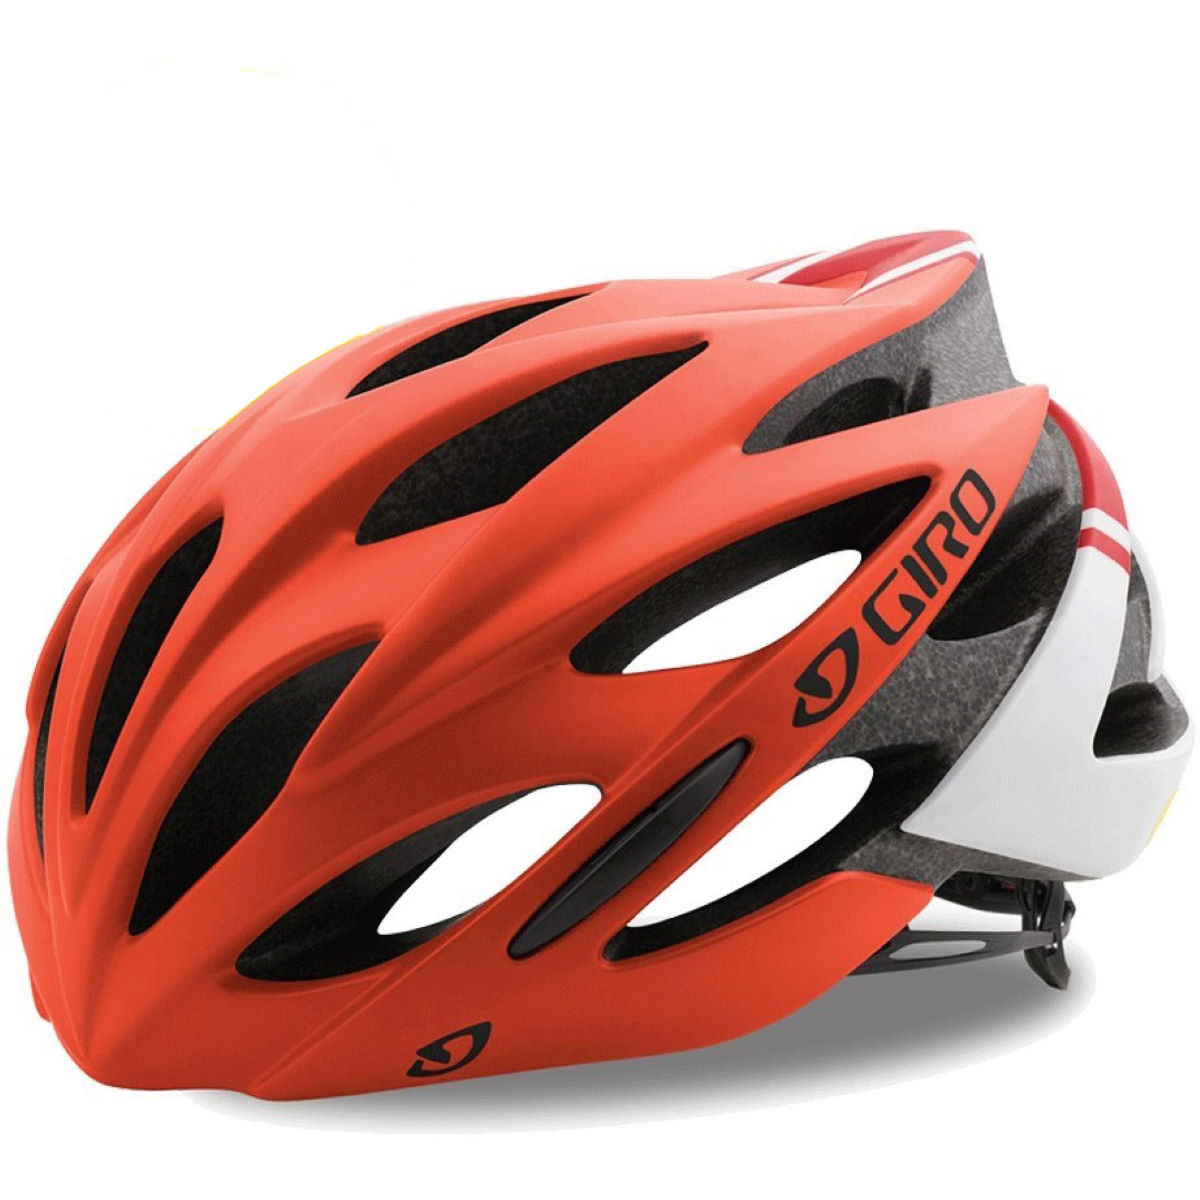 Image of Casque de route Giro Savant MIPS - S Matte Dark Red | Casques